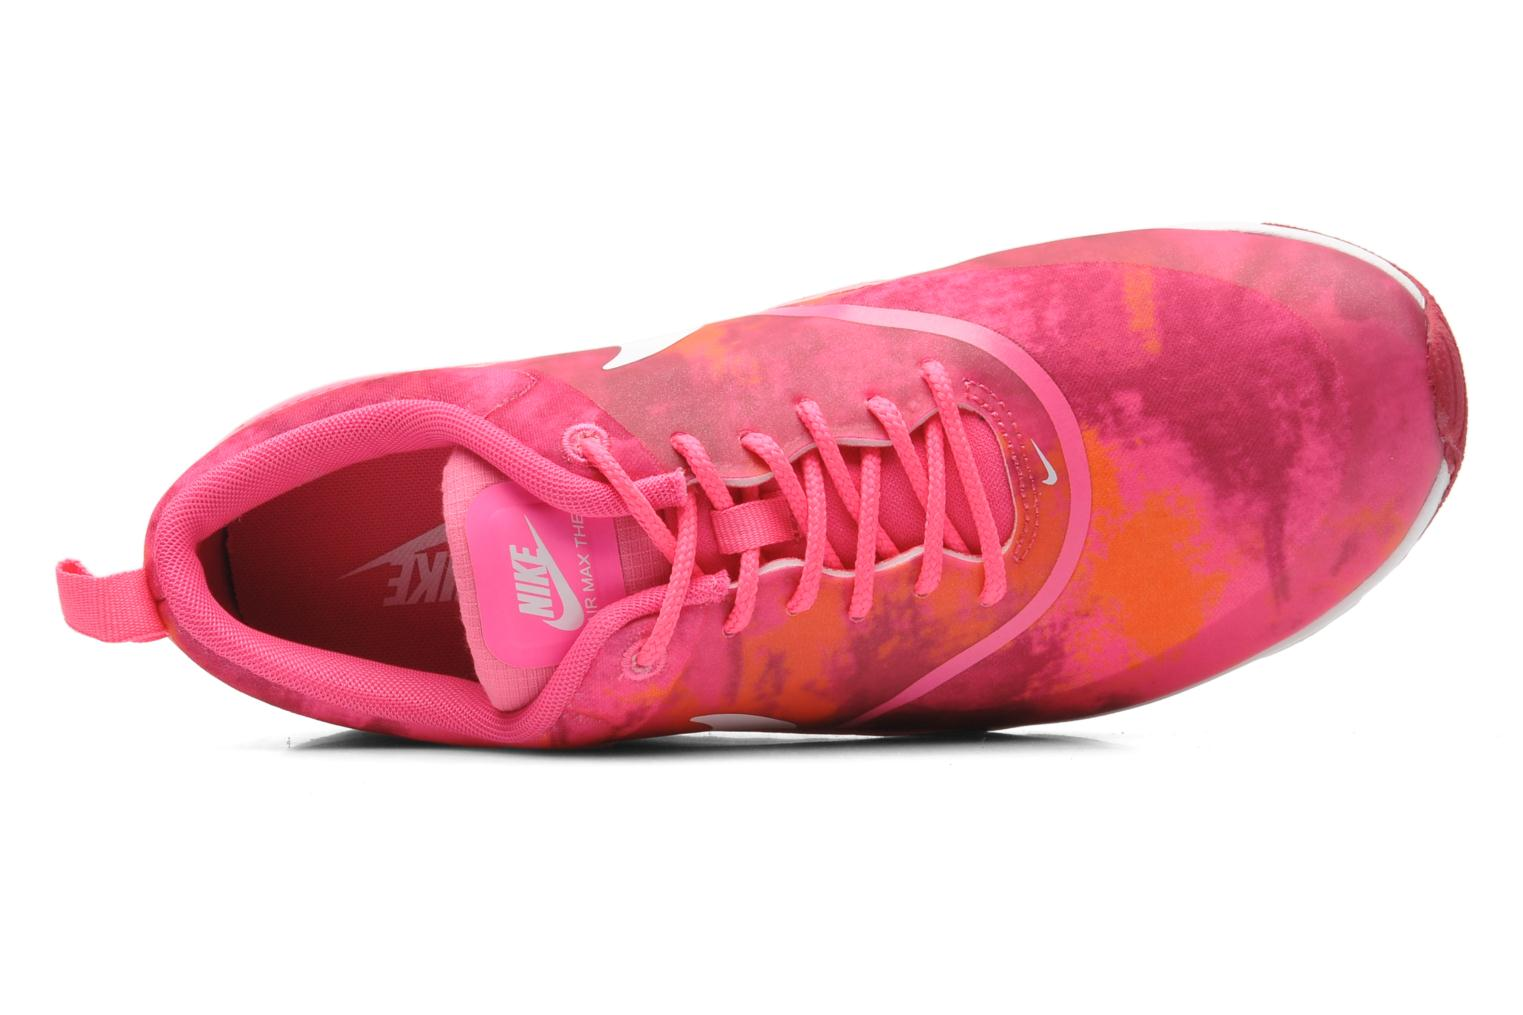 Wmns Nike Air Max Thea Print Pink Pow/White-Frbrry-Ttl Orng